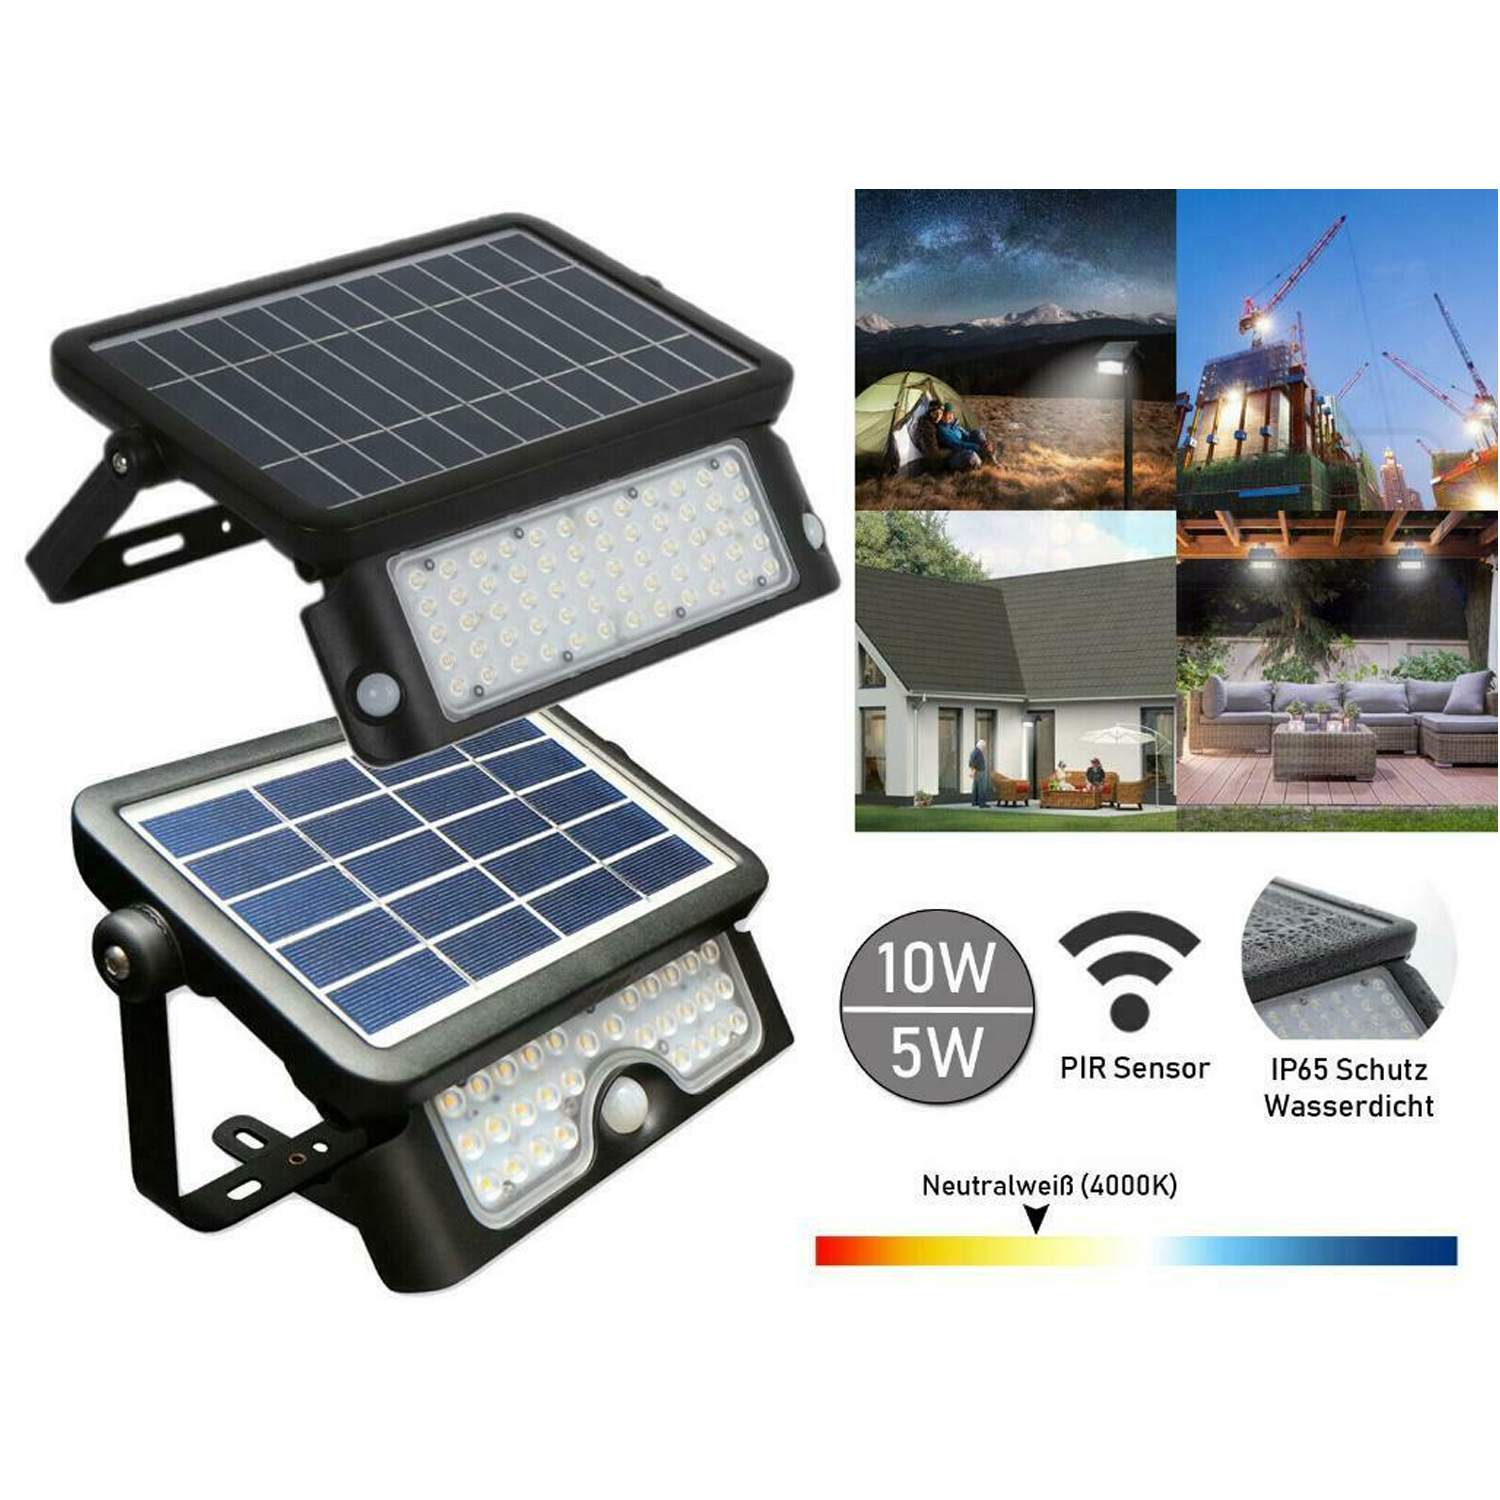 Adjustable-Portable-Solar-Wall-Light-1